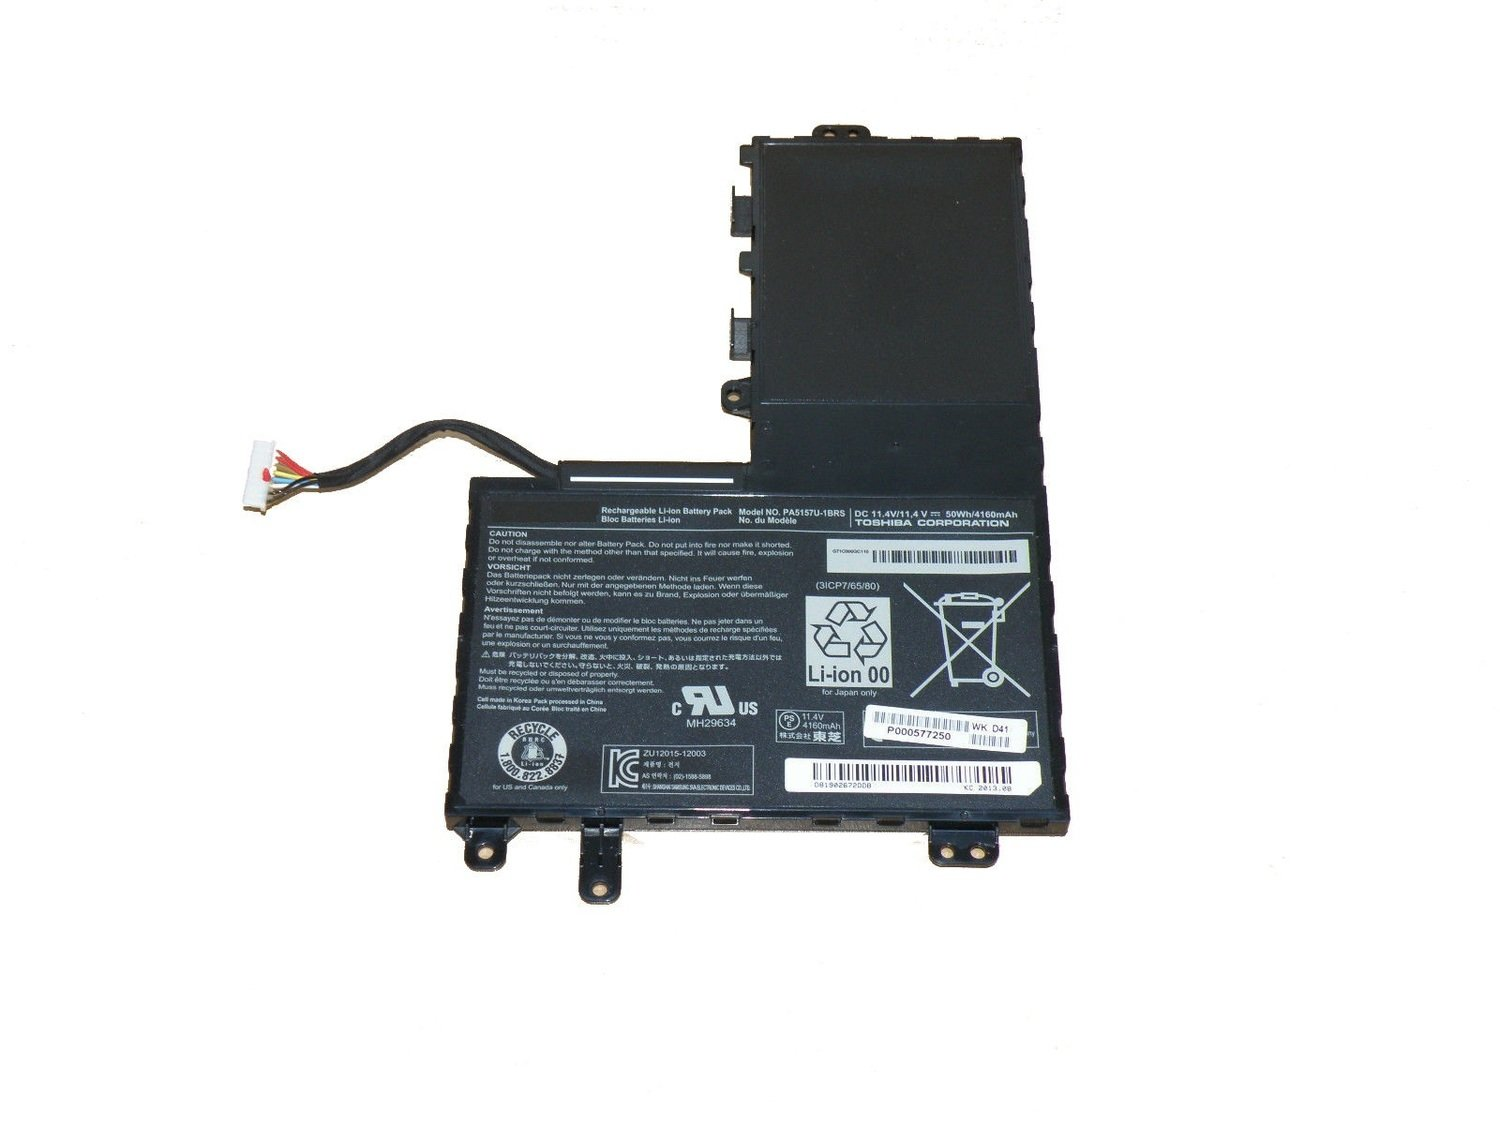 Toshiba PA5157U-1BRS compatible laptop battery